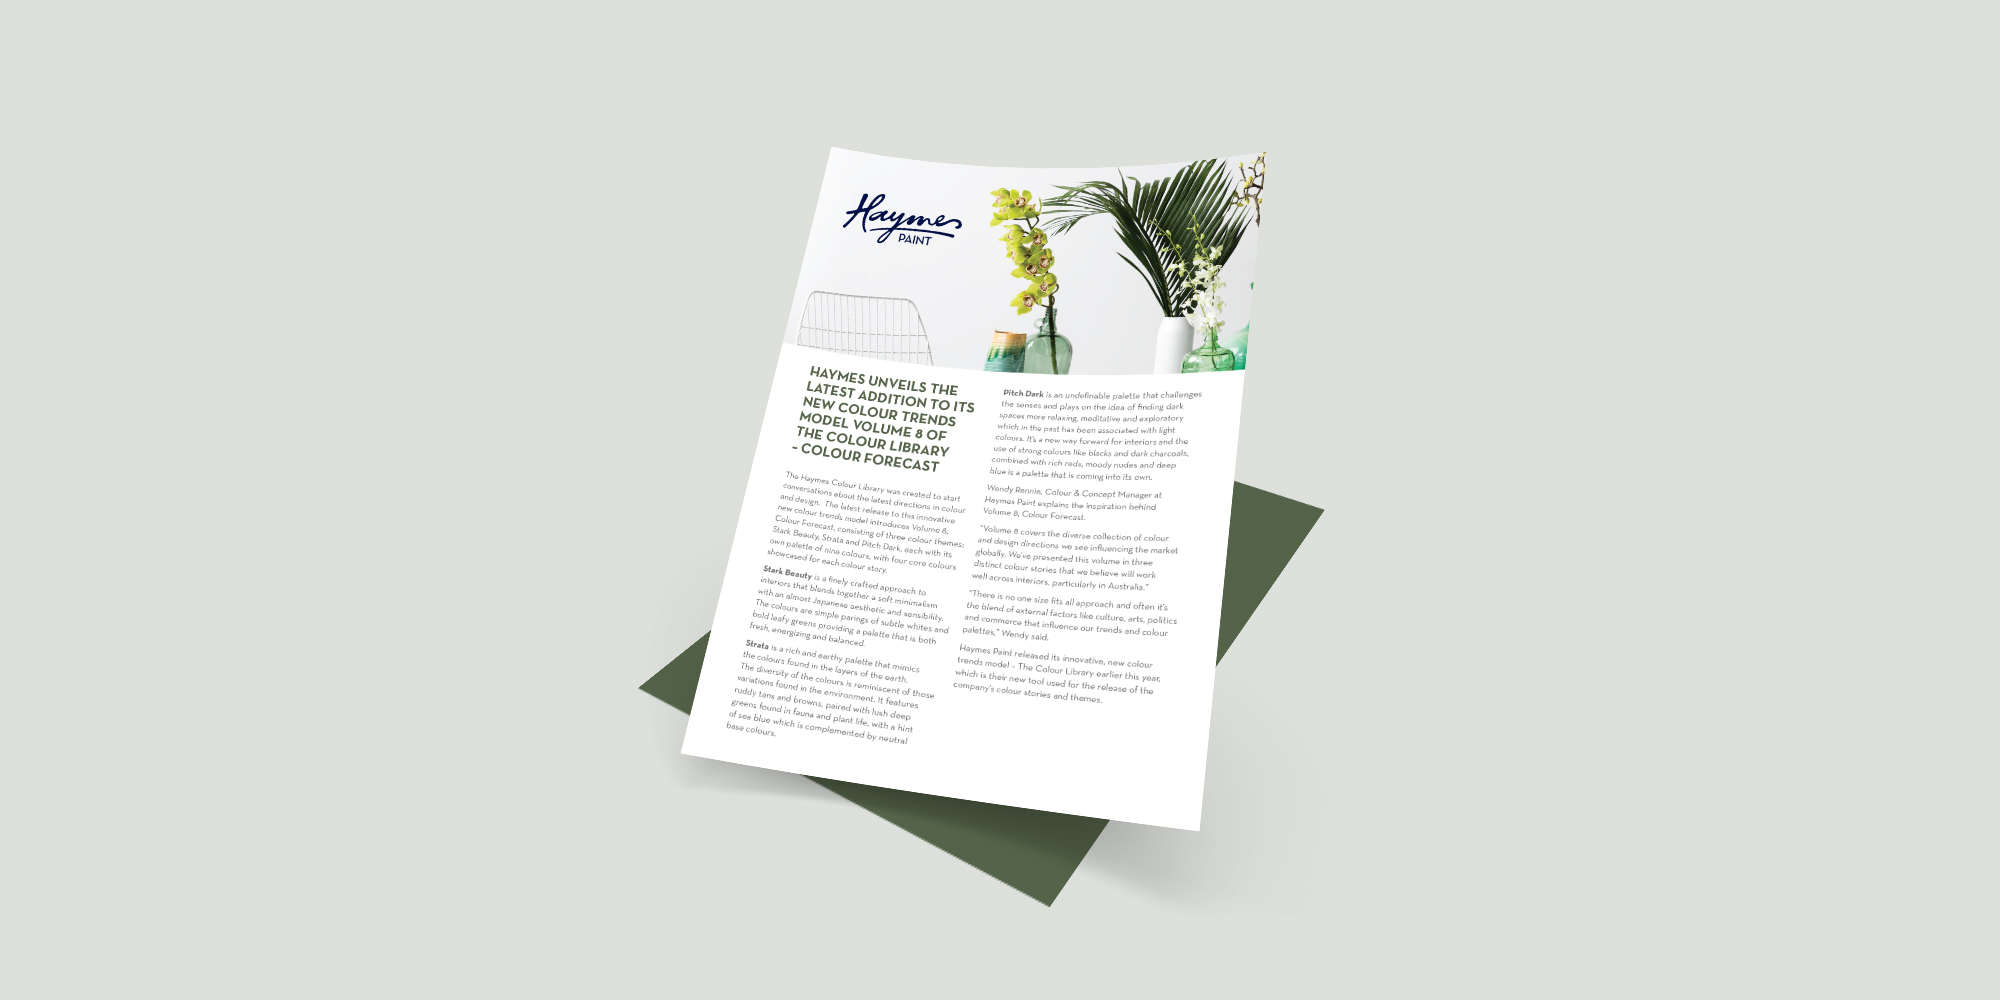 Haymes Paint Colour Library Vol. 8 Media Release